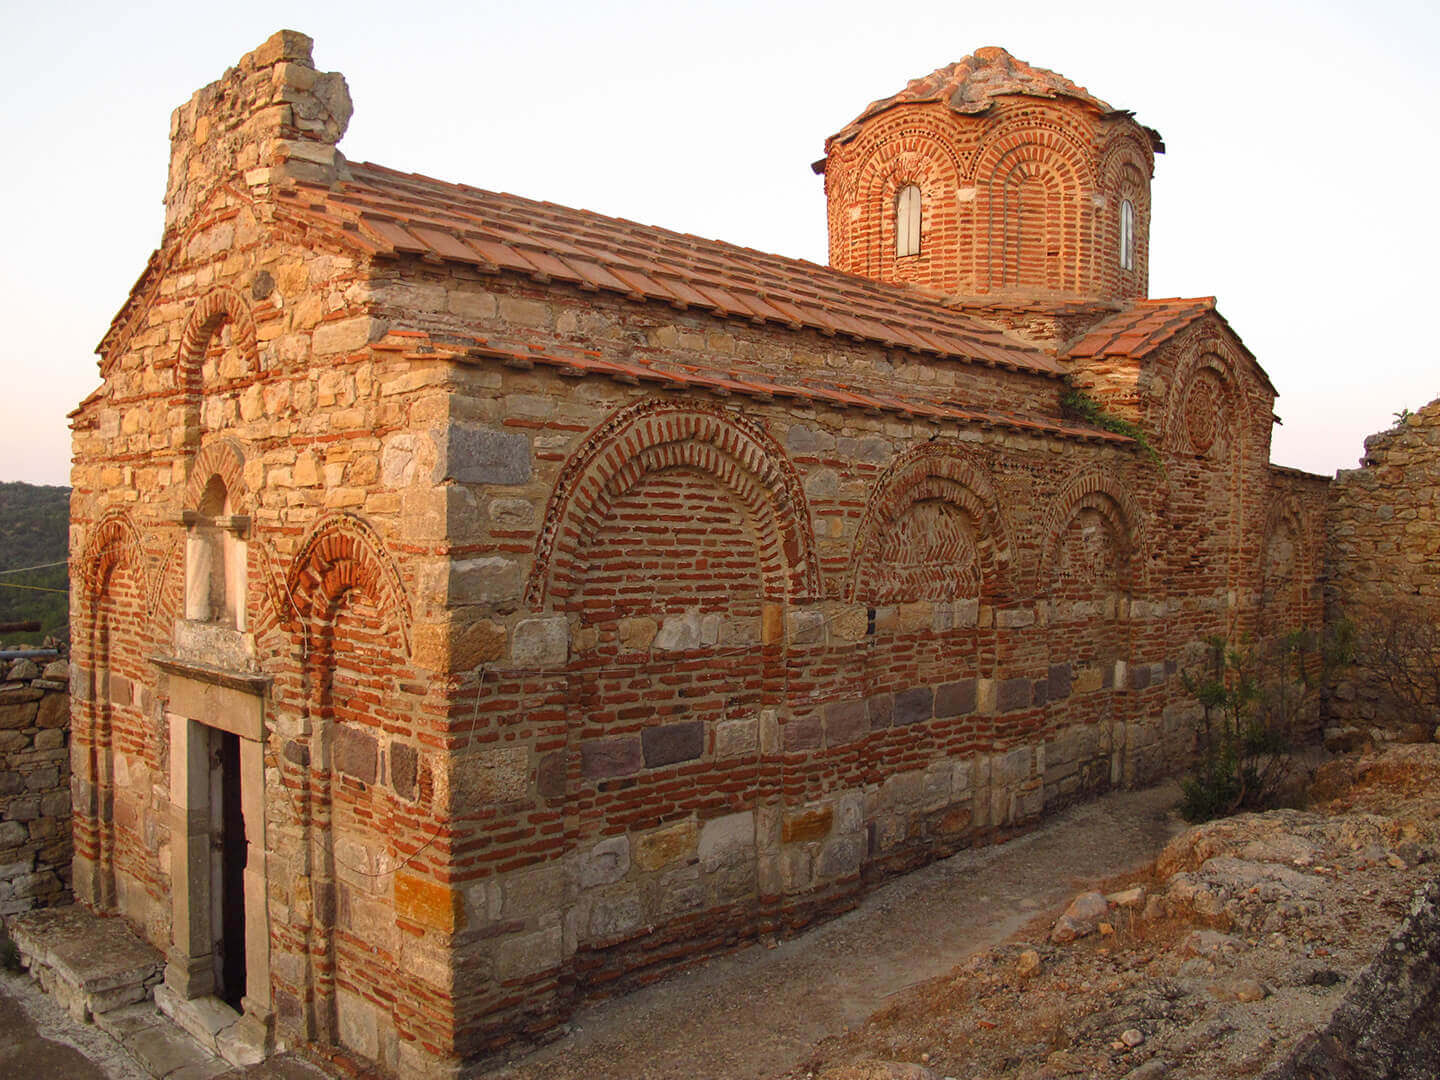 Panagia Sikelia church in Mesa Didima Vilage in South Chios